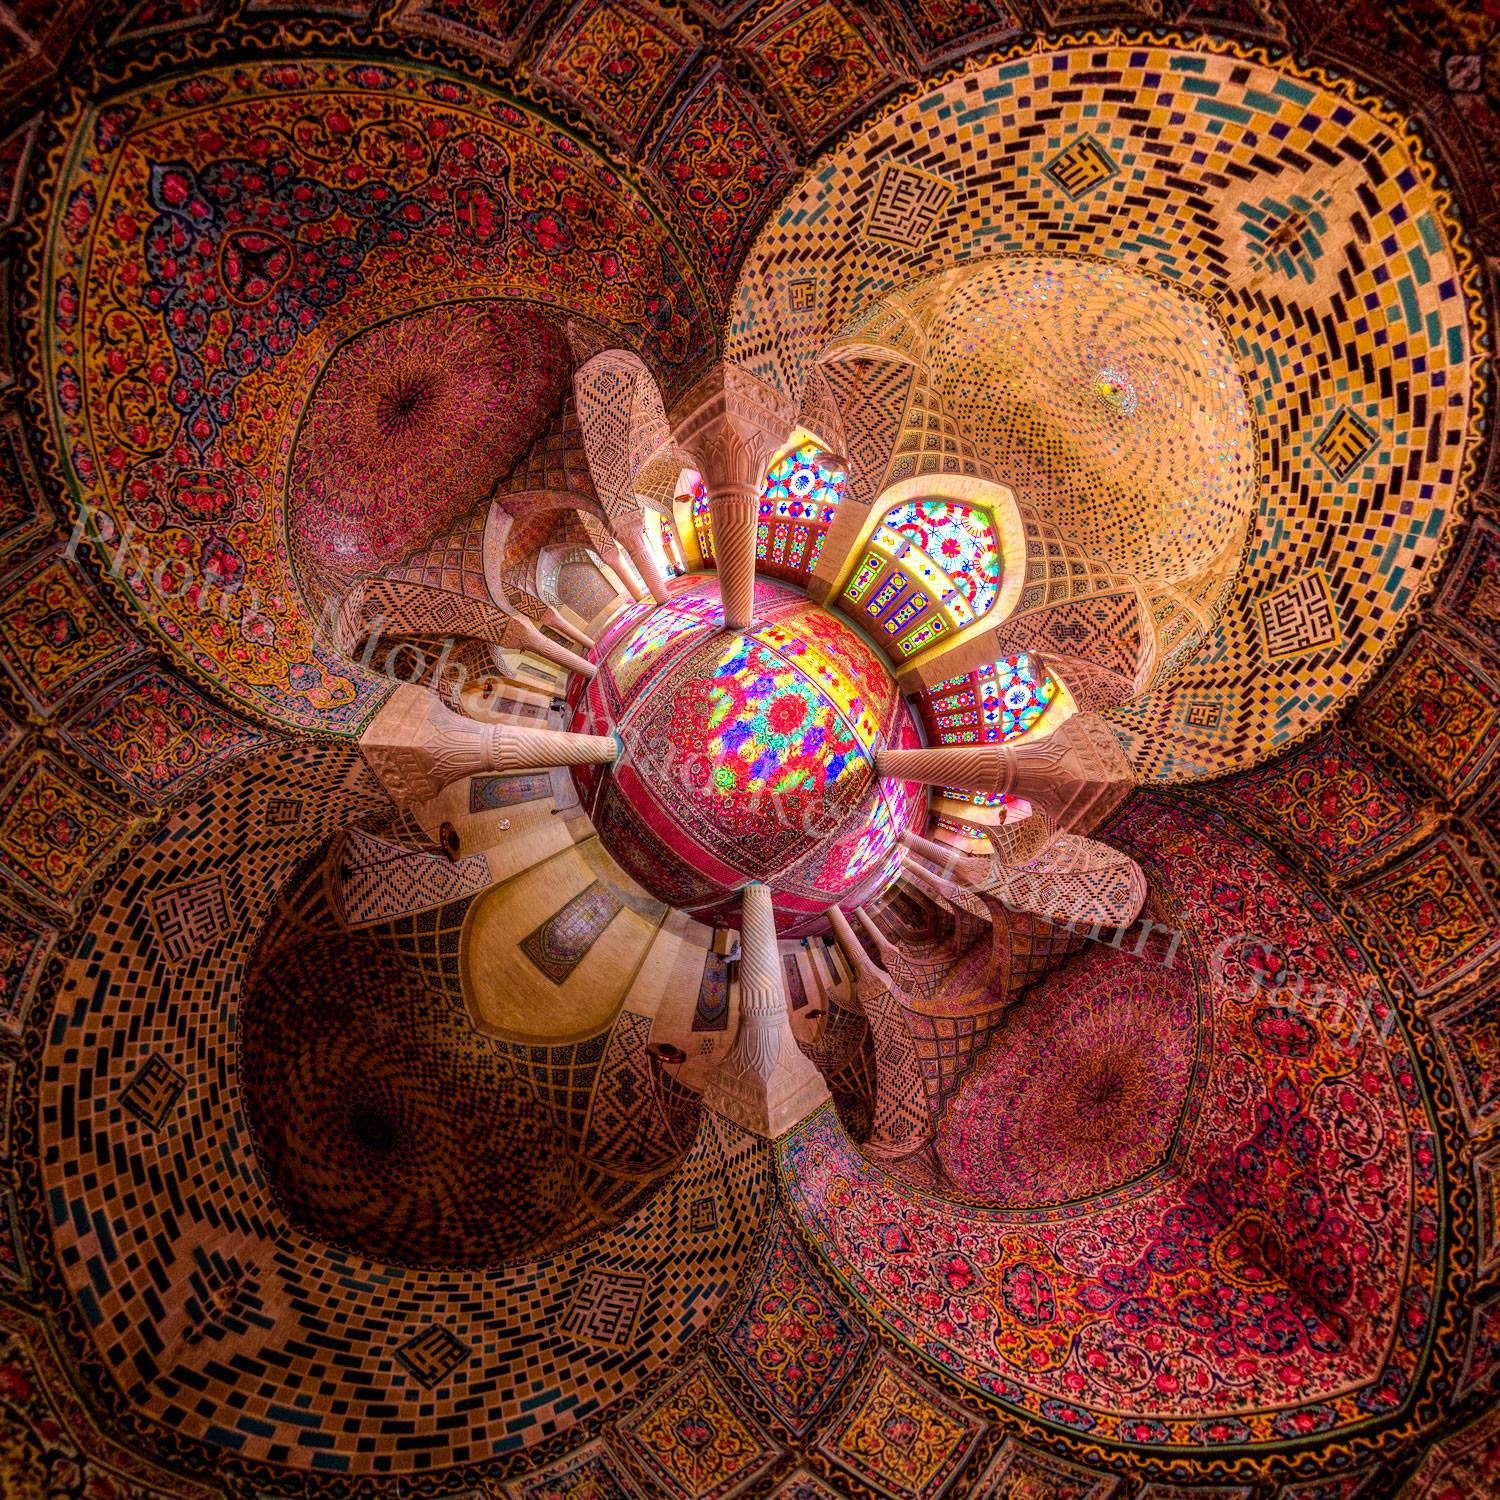 Kaleidoscope Views of the Middle East's Mosques: JuxtapozMosque04.jpg